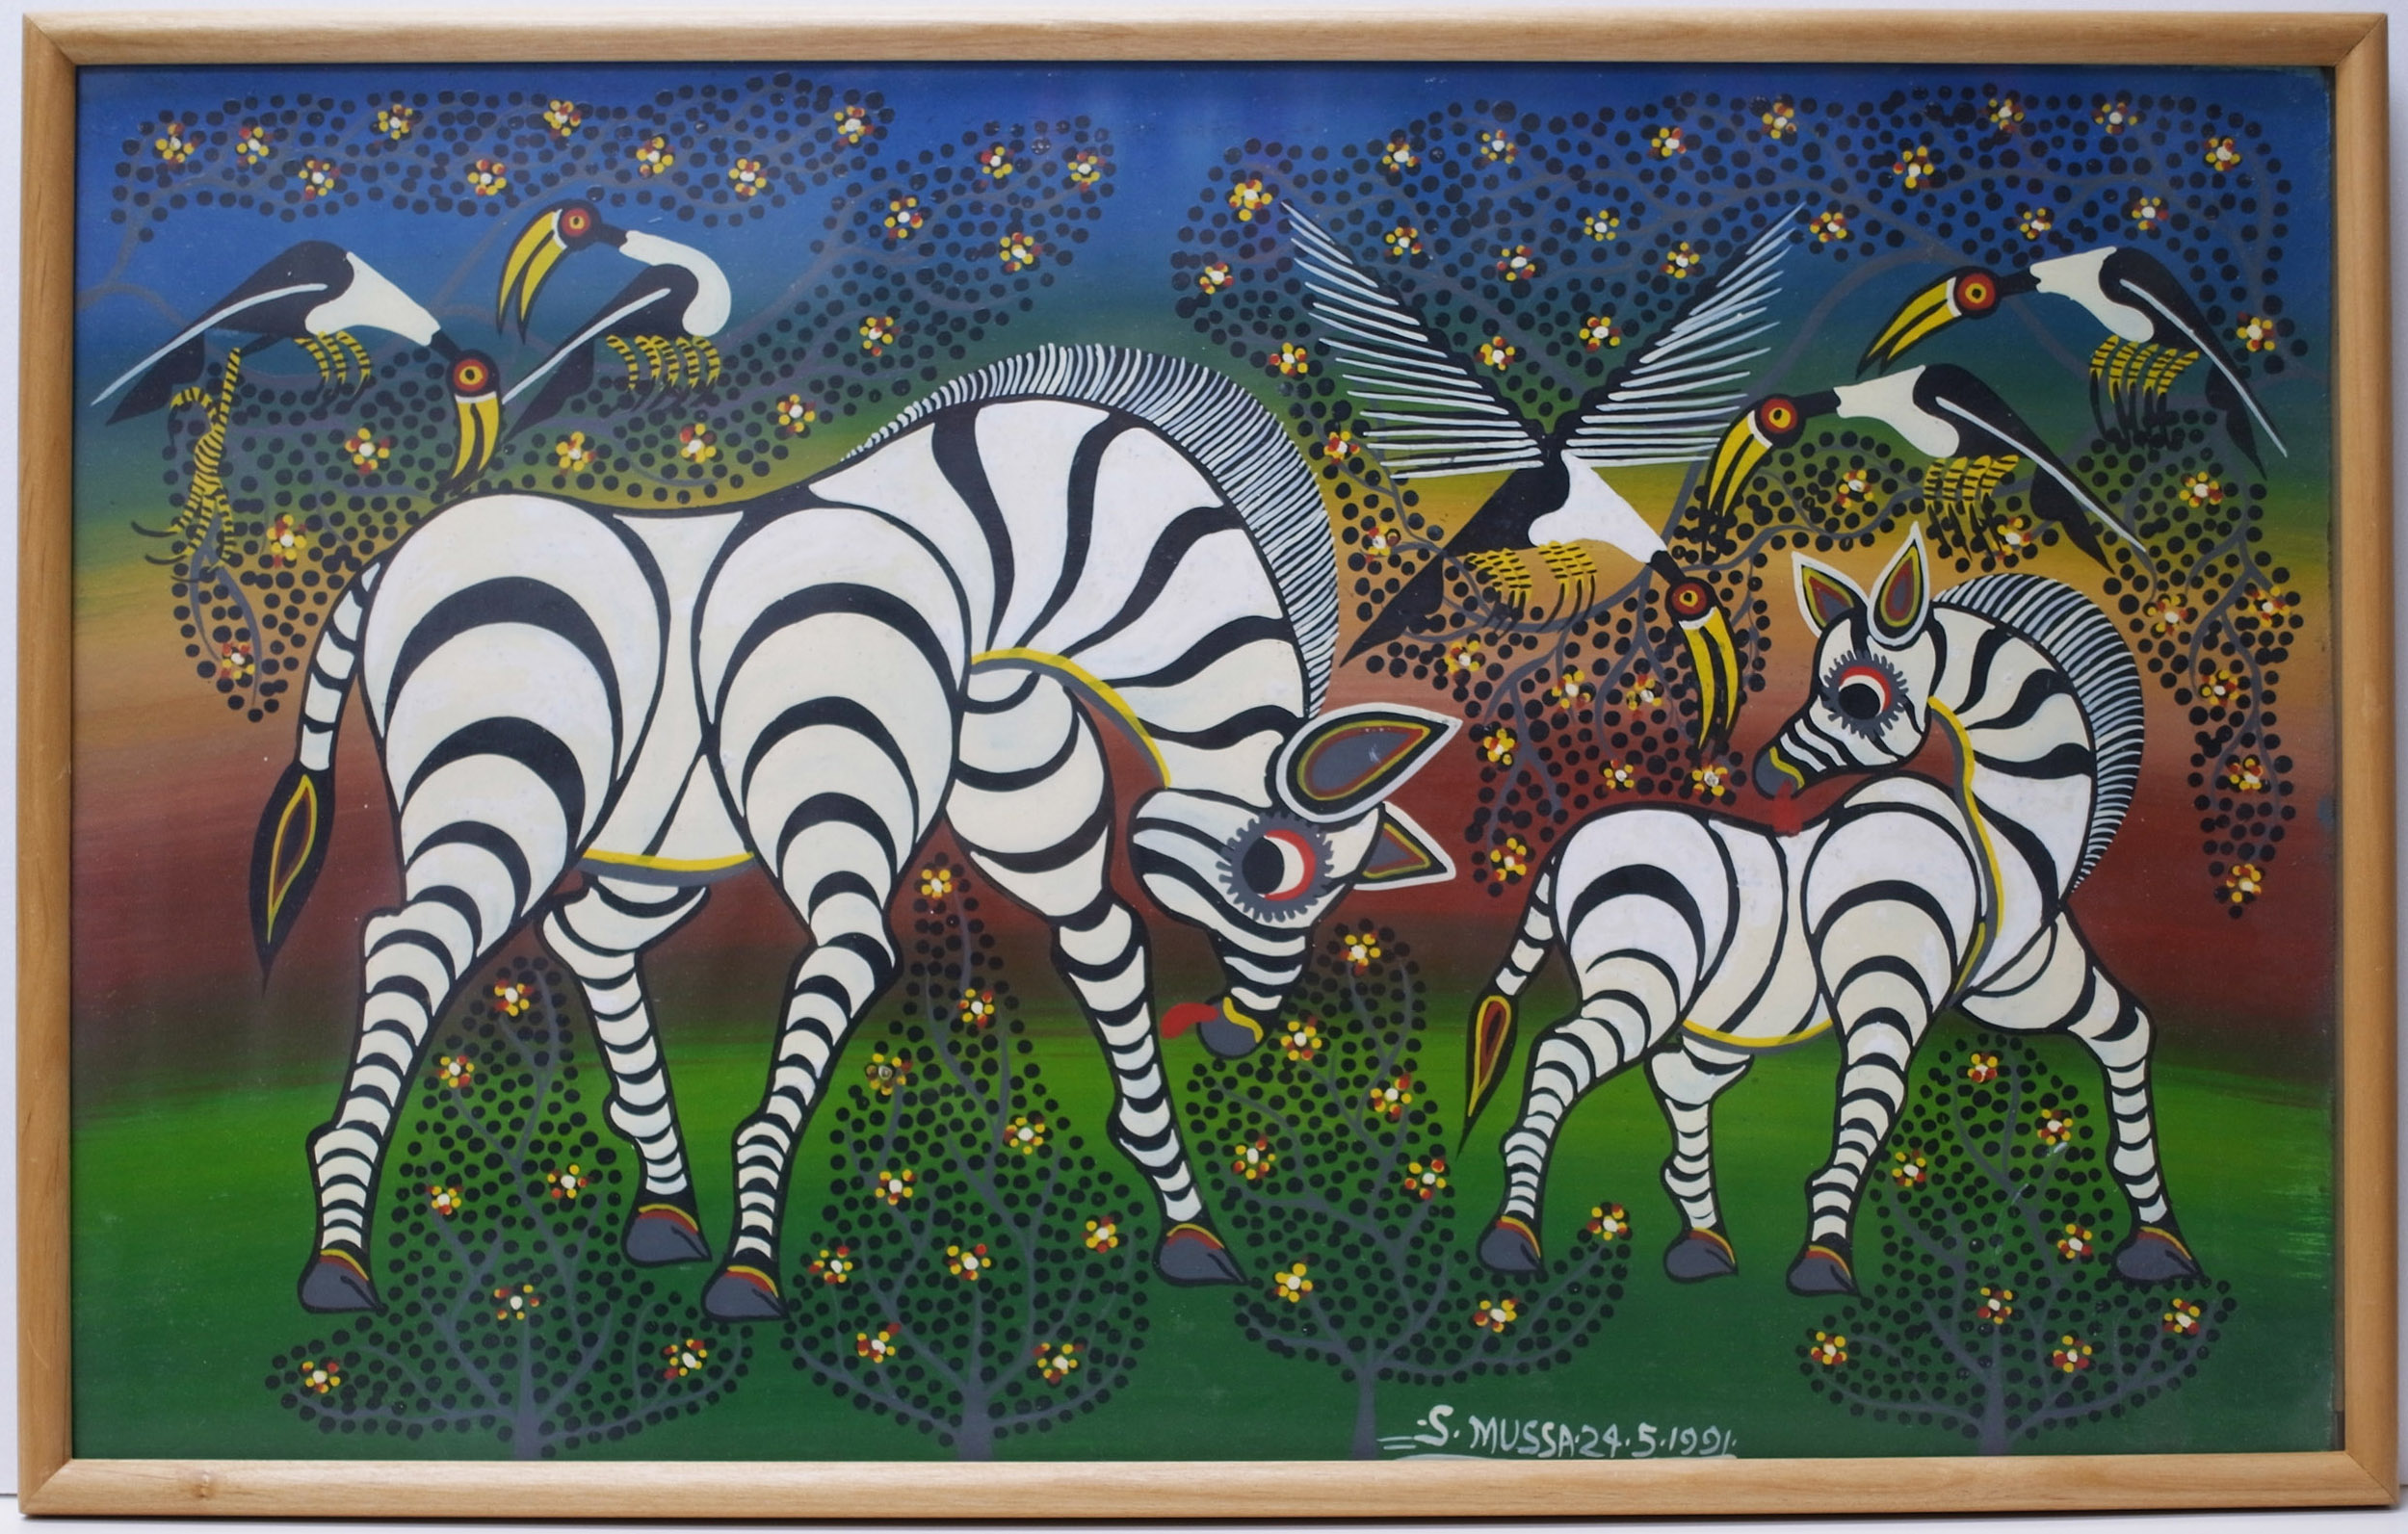 SALUM MUSSA - Zebras Parent And Child (300×500 Framed)